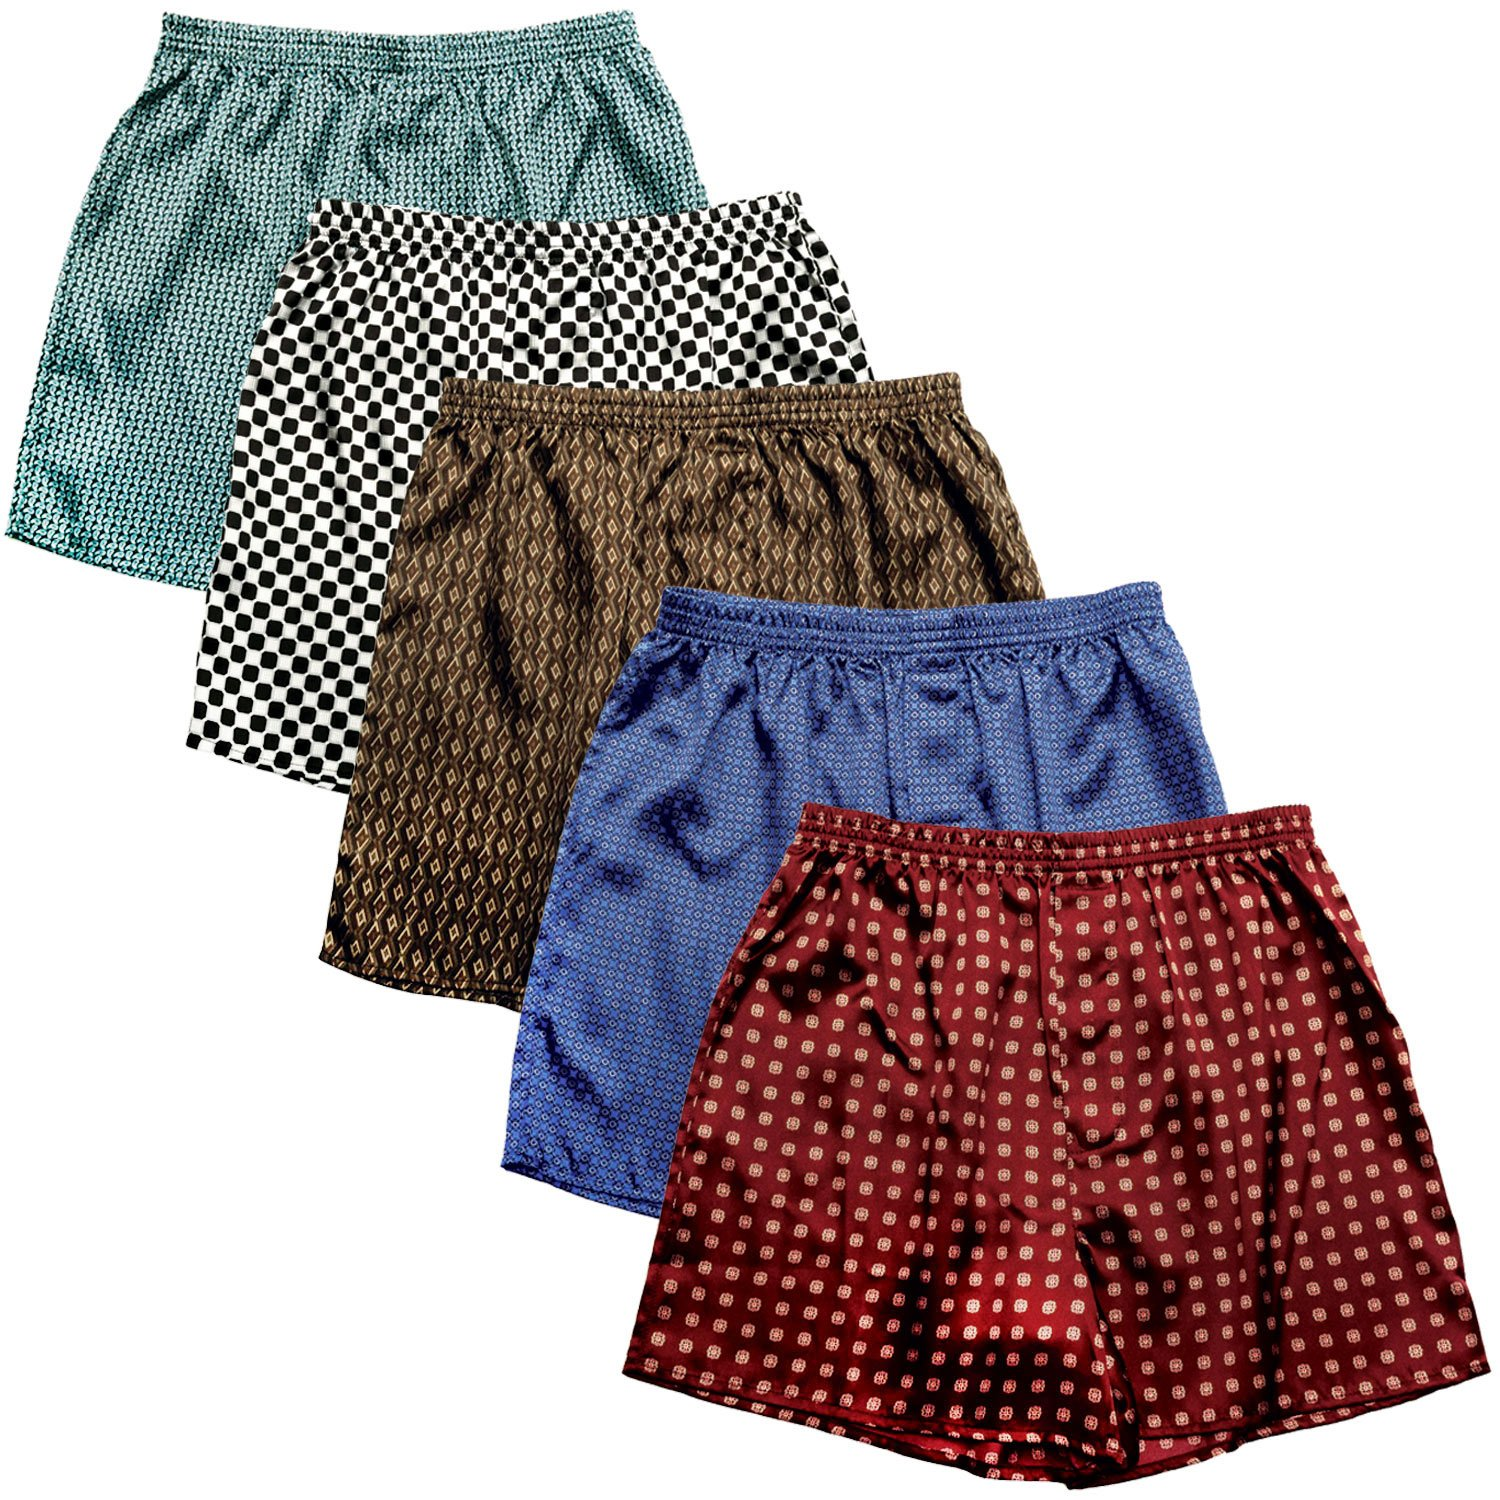 Mens Patterned Shorts Interesting Inspiration Design